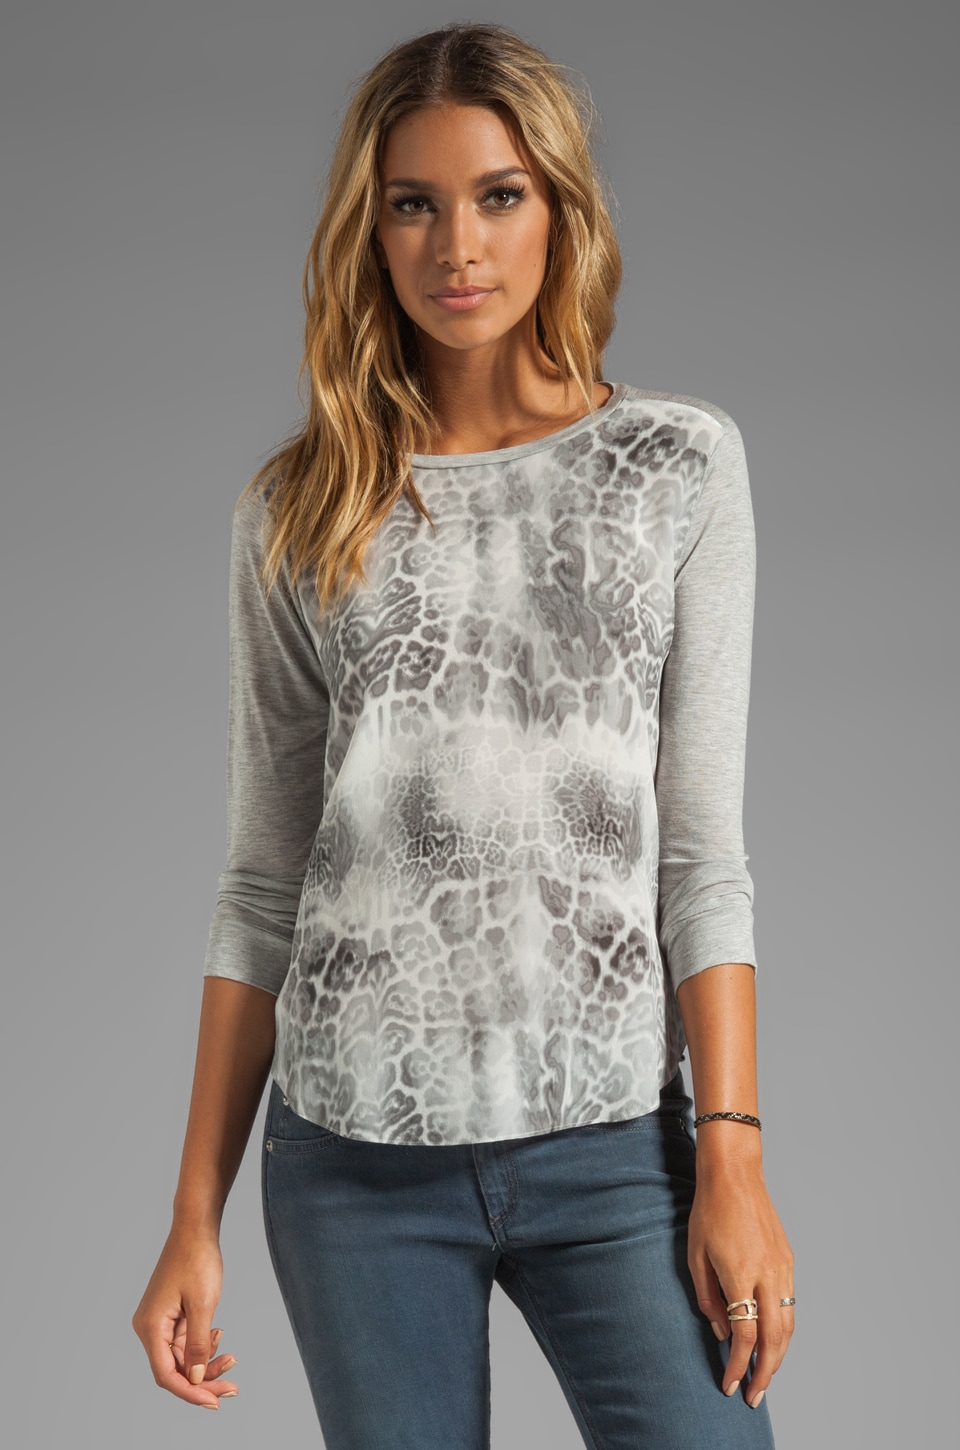 Rebecca Taylor Animal Printed Long Sleeve Tee in Steel Combo